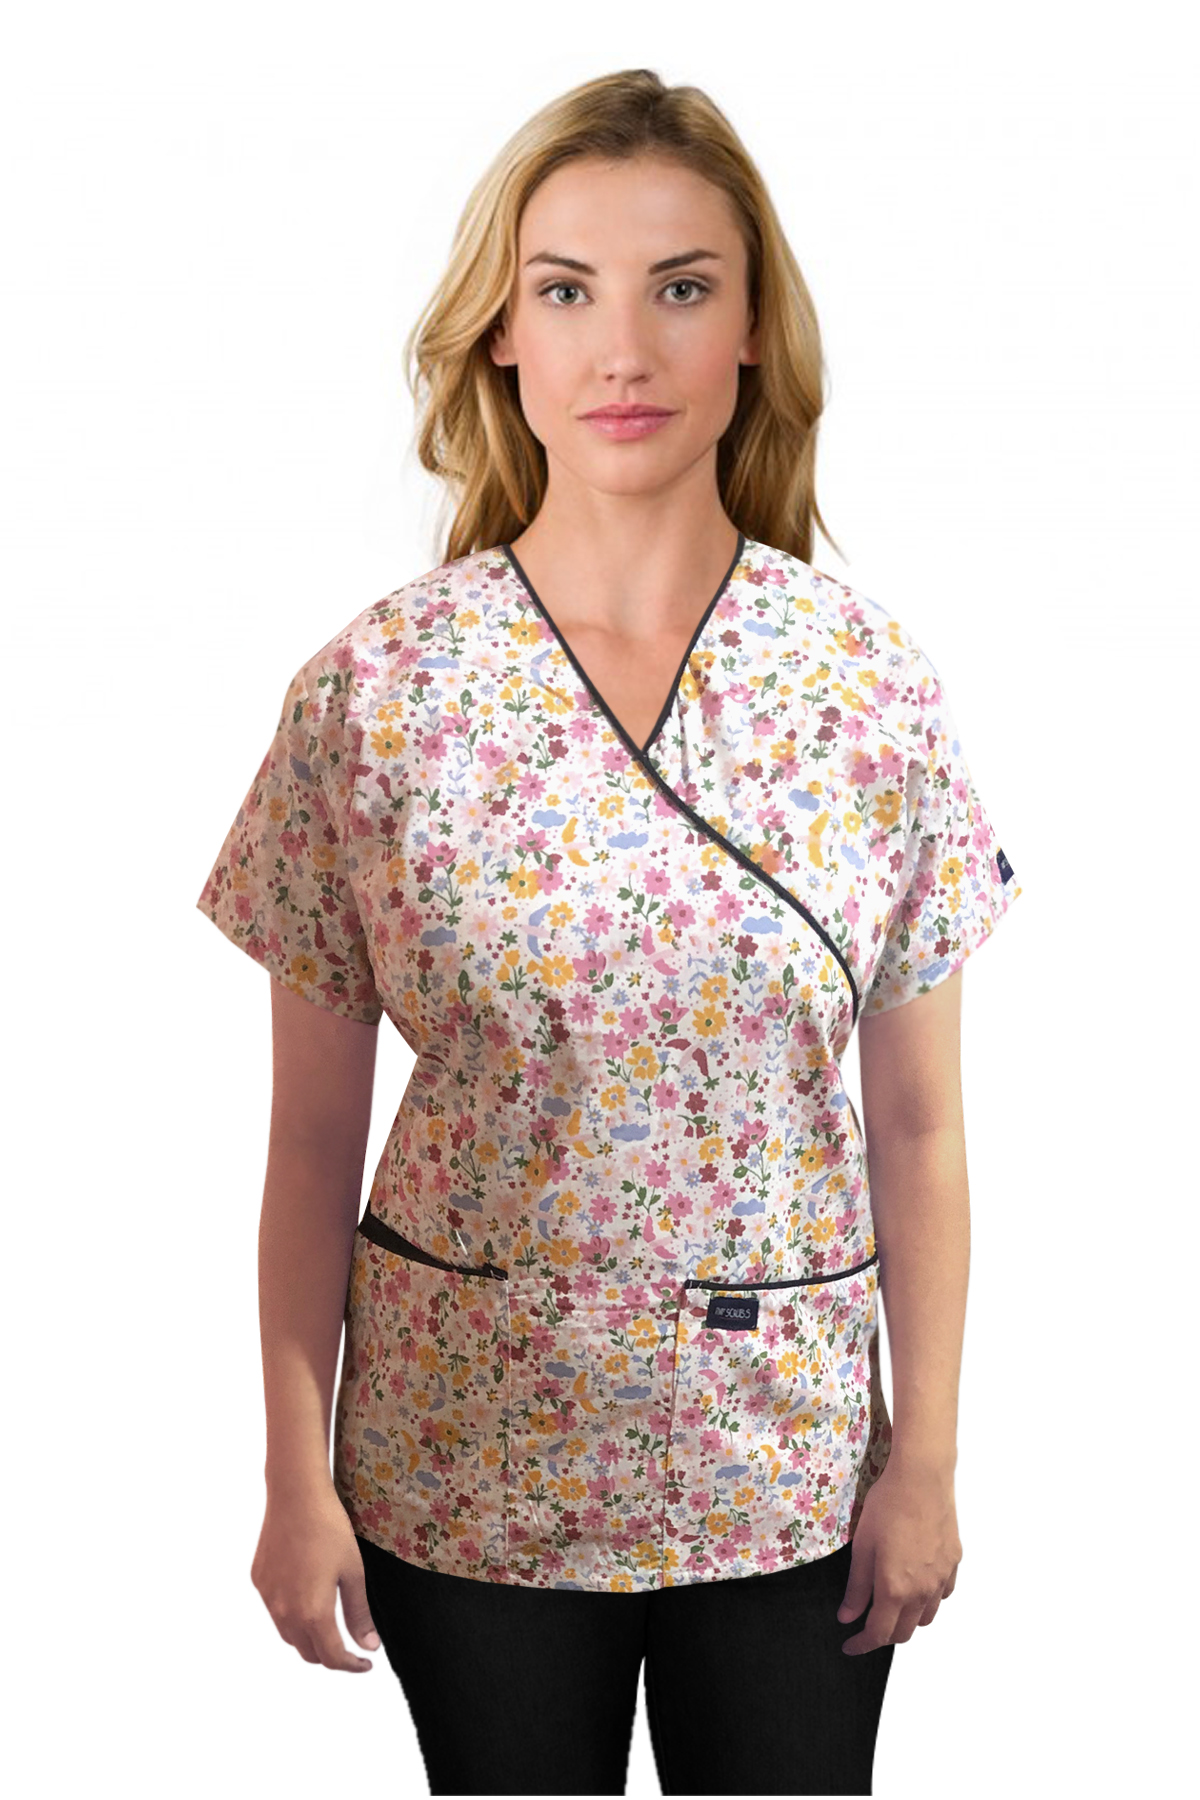 Printed scrub set mock wrap 5 pocket half sleeve in Multi flower Print with black piping (top 3 pocket with bottom 2 pocket boot cut)